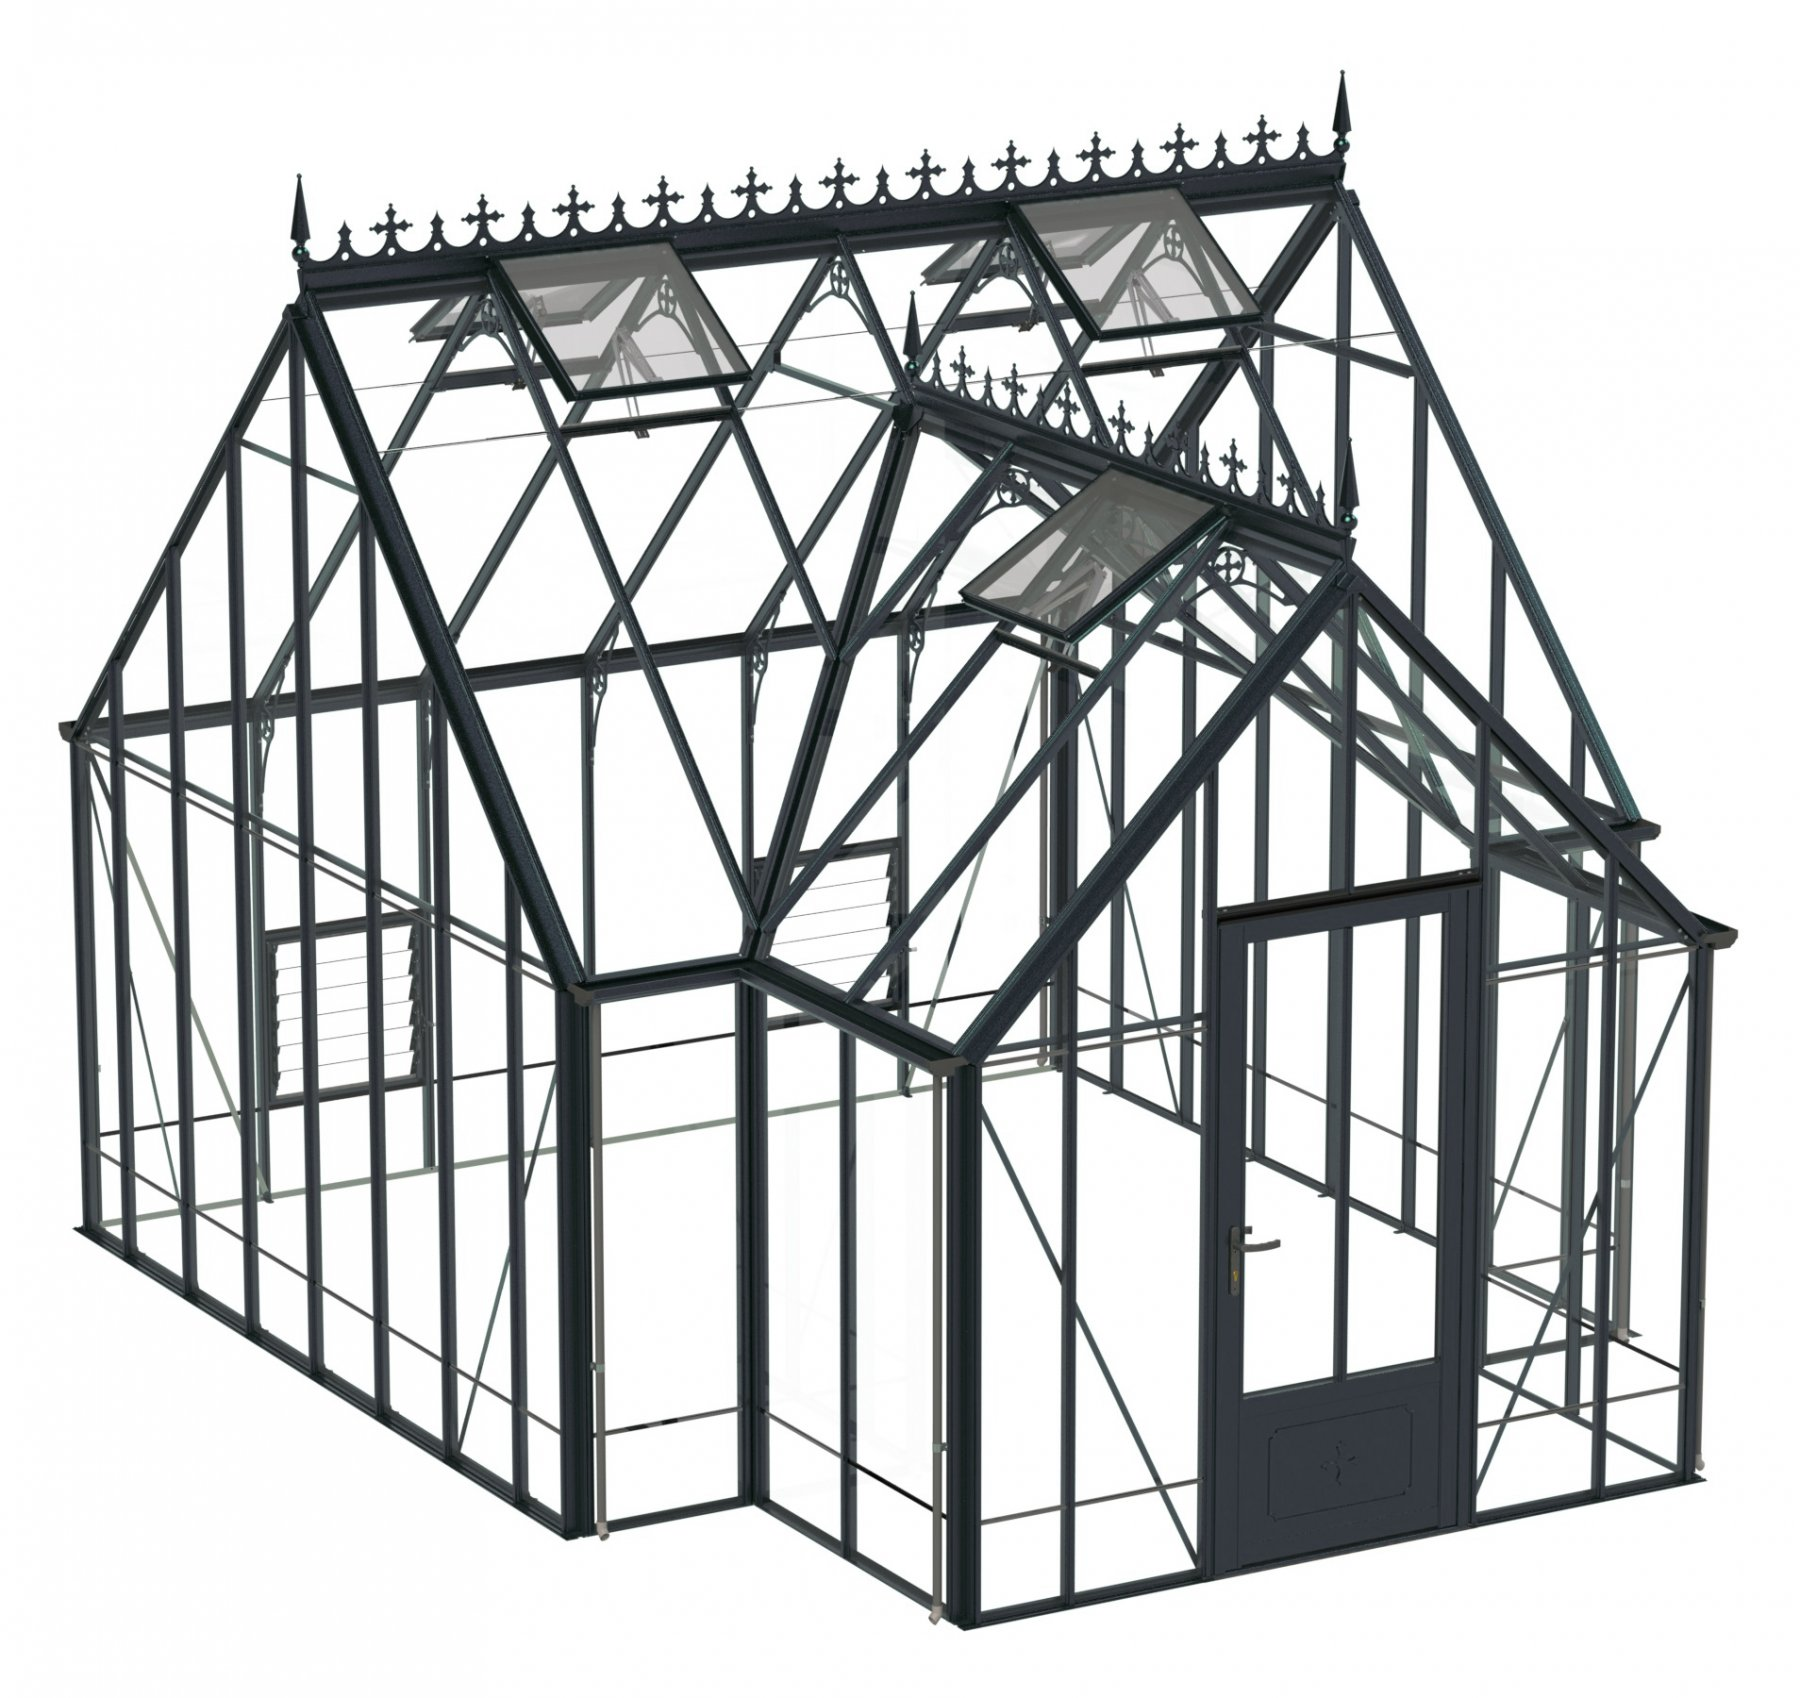 Robinsons Reicliffe 15ft x 12ft, in Anthracite